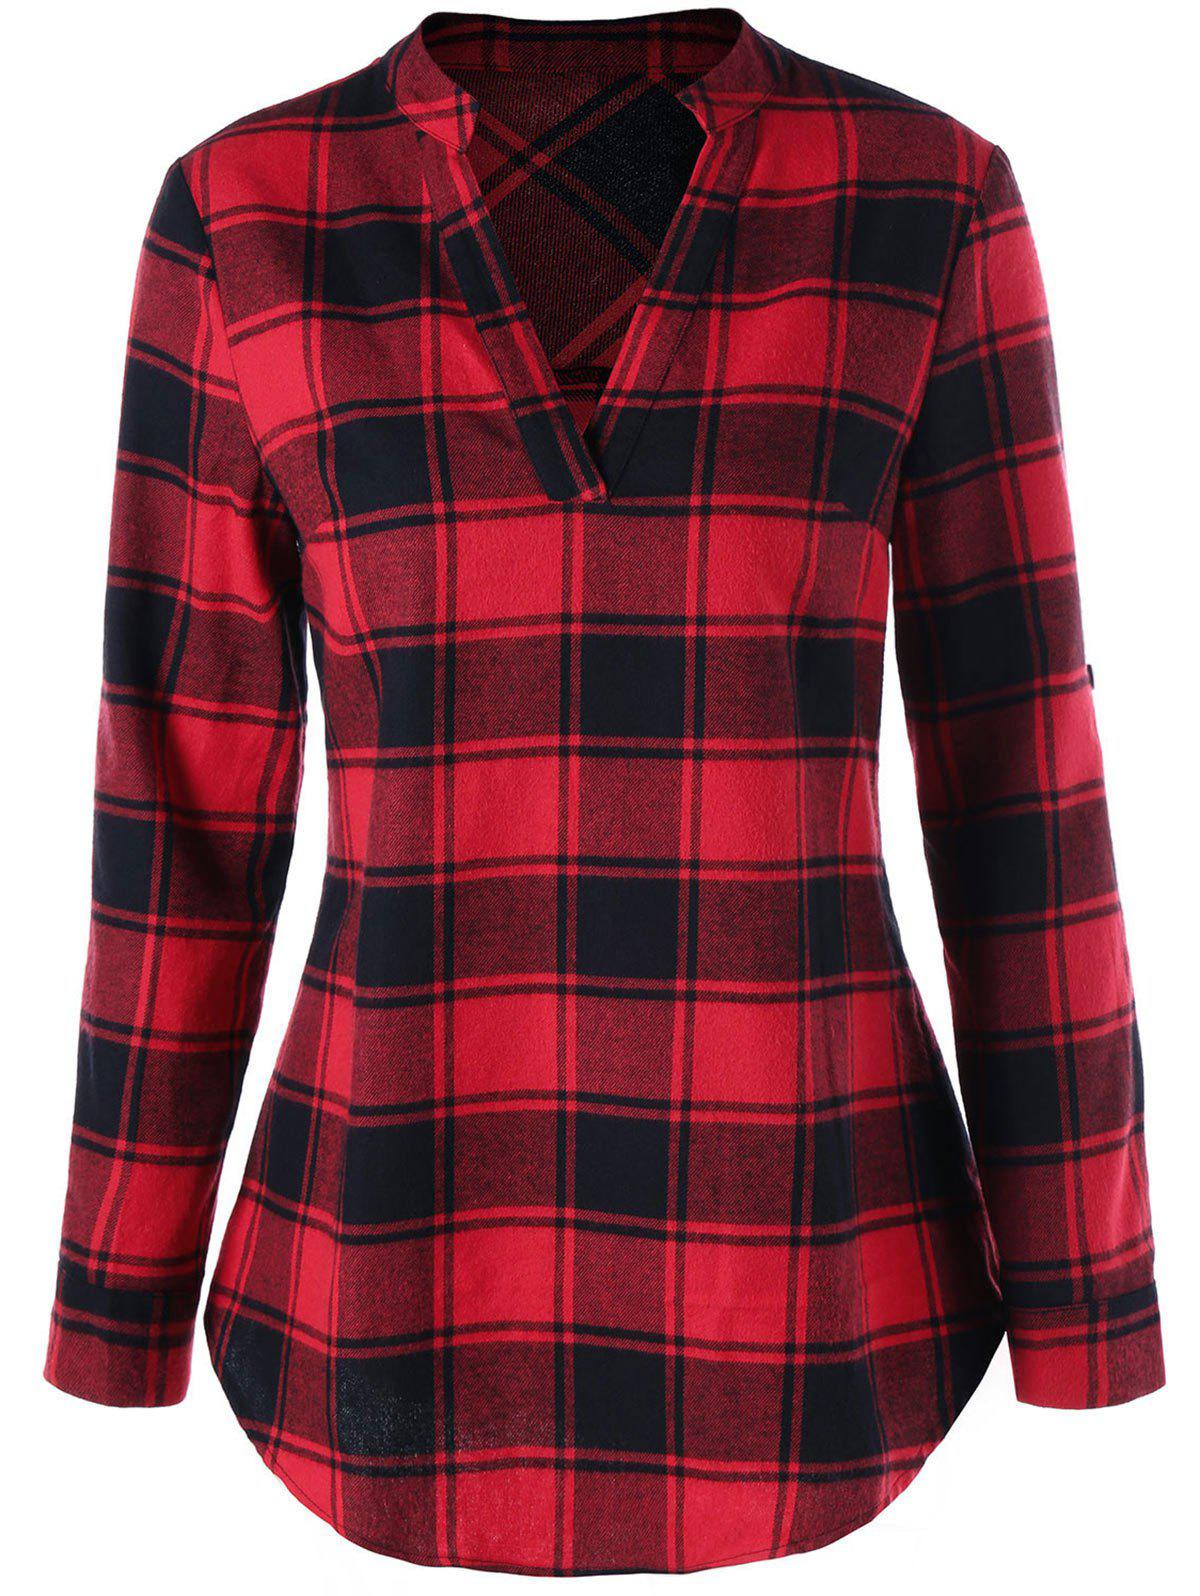 Split Neck Curved Hem Plaid BlouseWOMEN<br><br>Size: 2XL; Color: RED; Occasion: Casual; Style: Casual; Material: Rayon; Shirt Length: Long; Sleeve Length: Full; Collar: V-Neck; Pattern Type: Plaid; Season: Fall,Spring; Weight: 0.2700kg; Package Contents: 1 x Blouse;